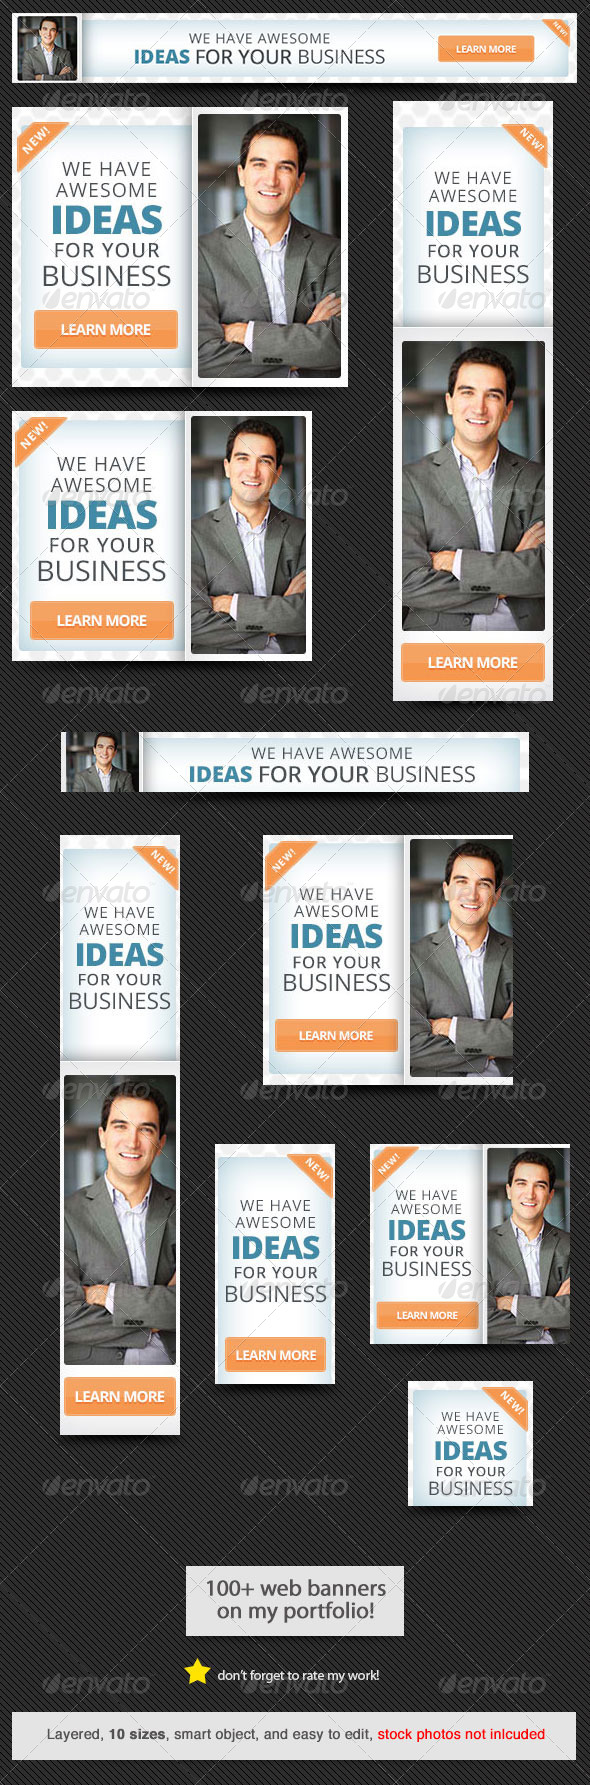 GraphicRiver Corporate Web Banner Design Template 39 7896143